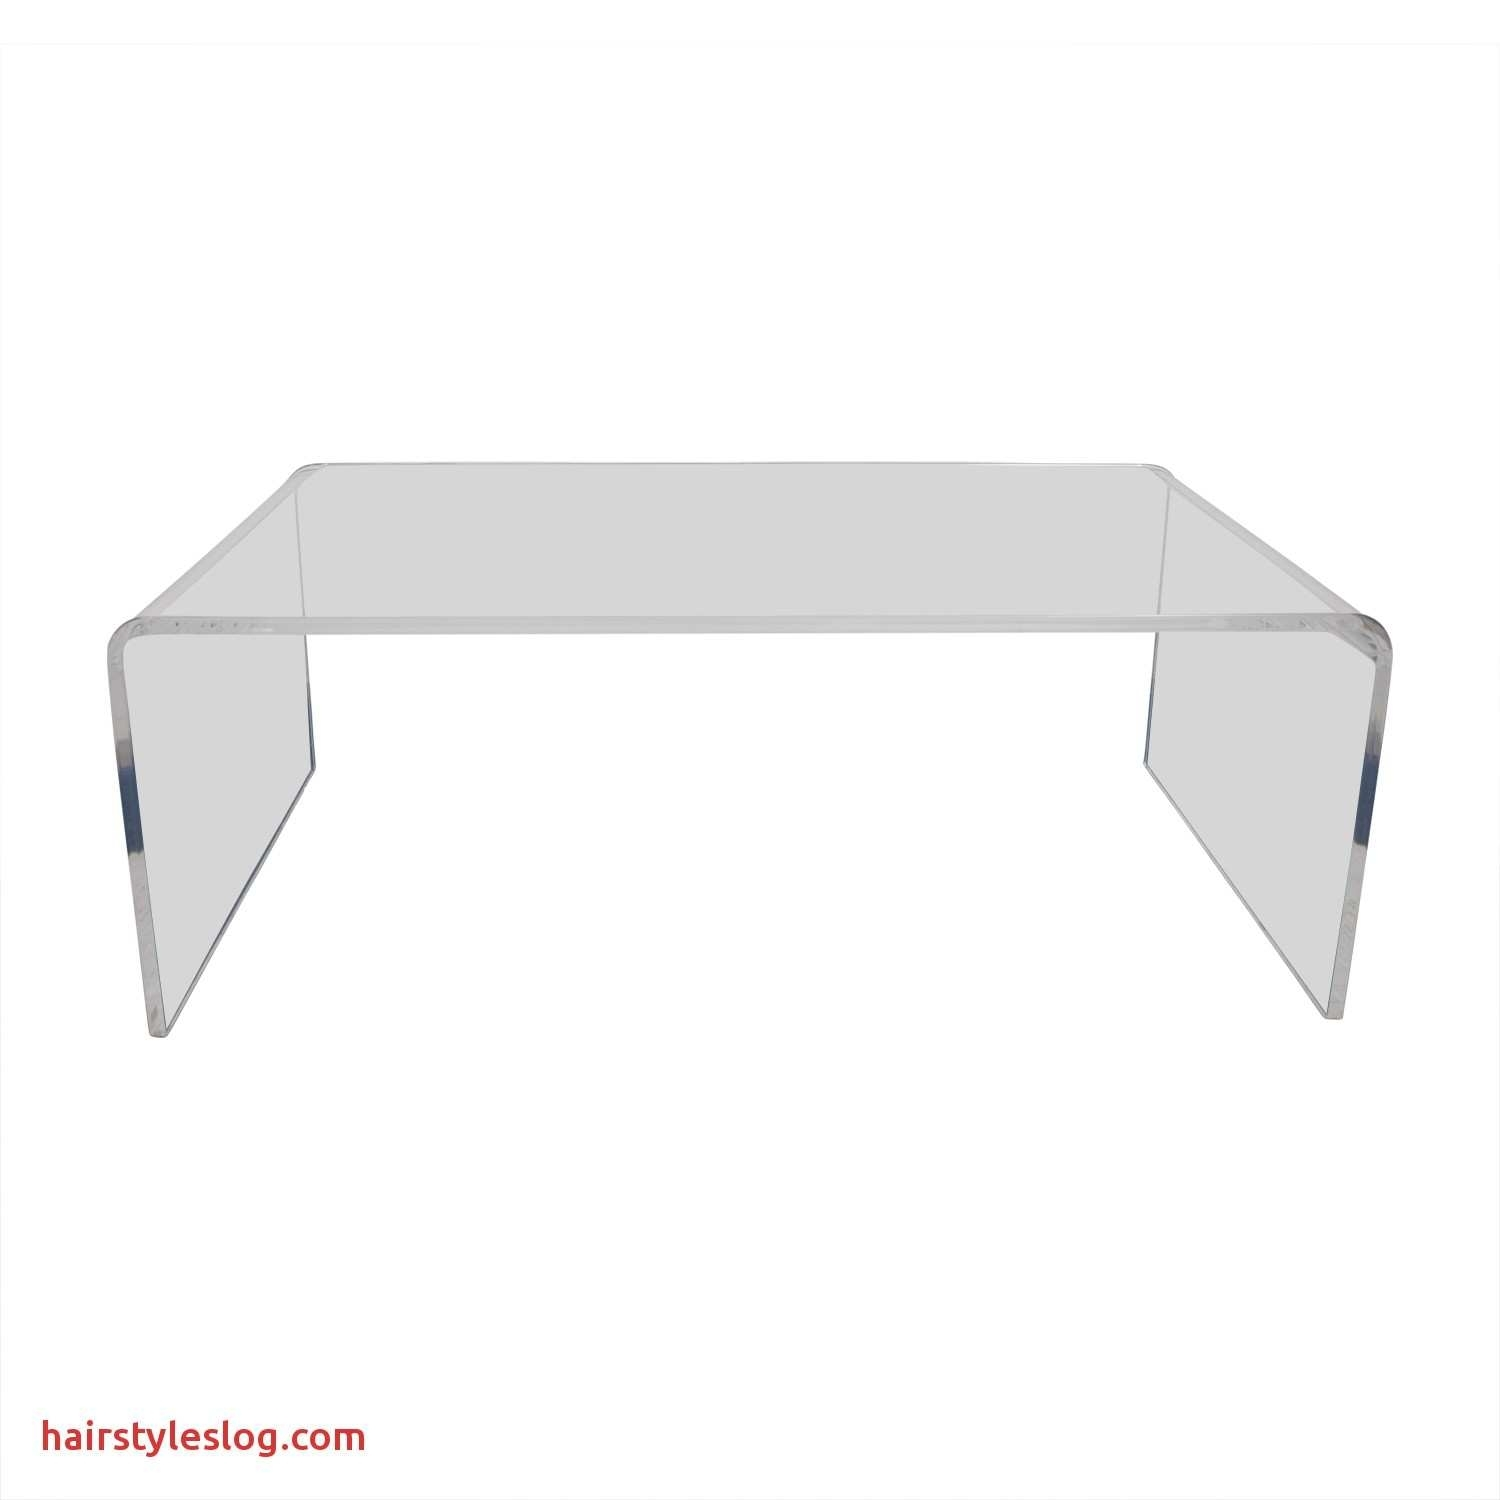 Wave To Flush: Cb2 Free Shipping For Home Prepare 60 Off Cb2 Cb2 For Peekaboo Acrylic Tall Coffee Tables (View 19 of 30)